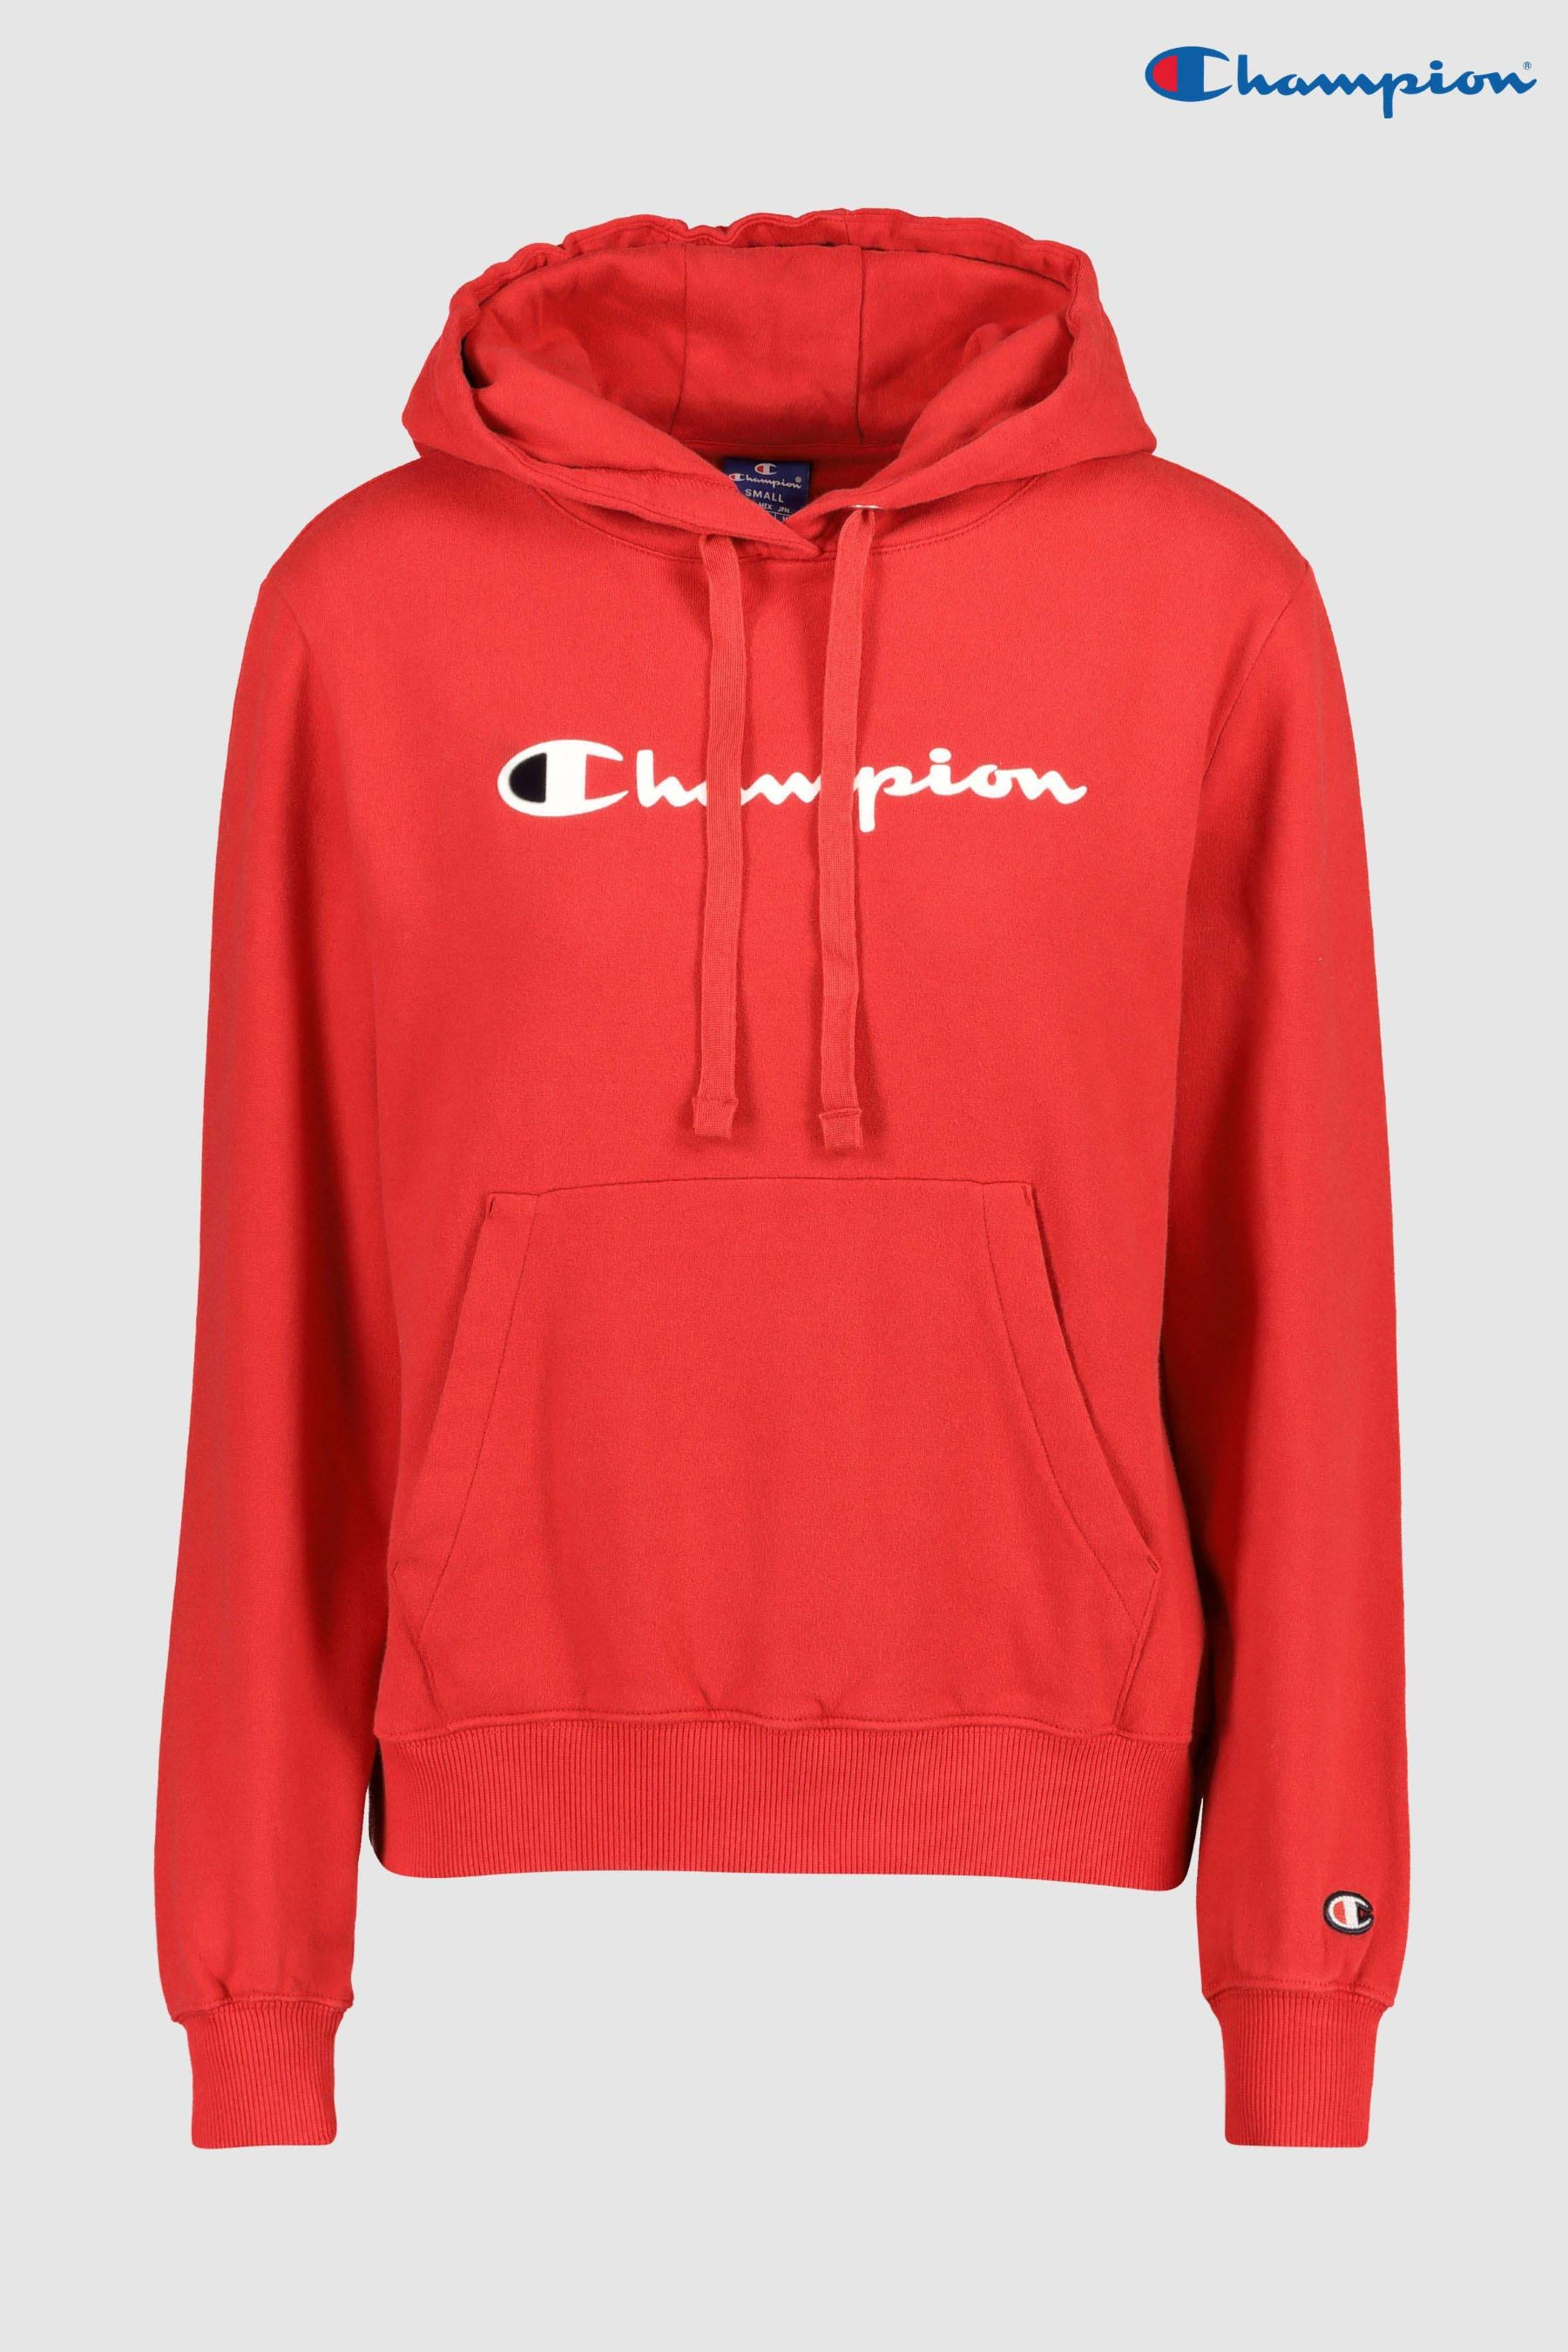 14b7abe9c75 Womens Champion Logo Hoody - Red | outfits in 2019 | Champion hoodie ...